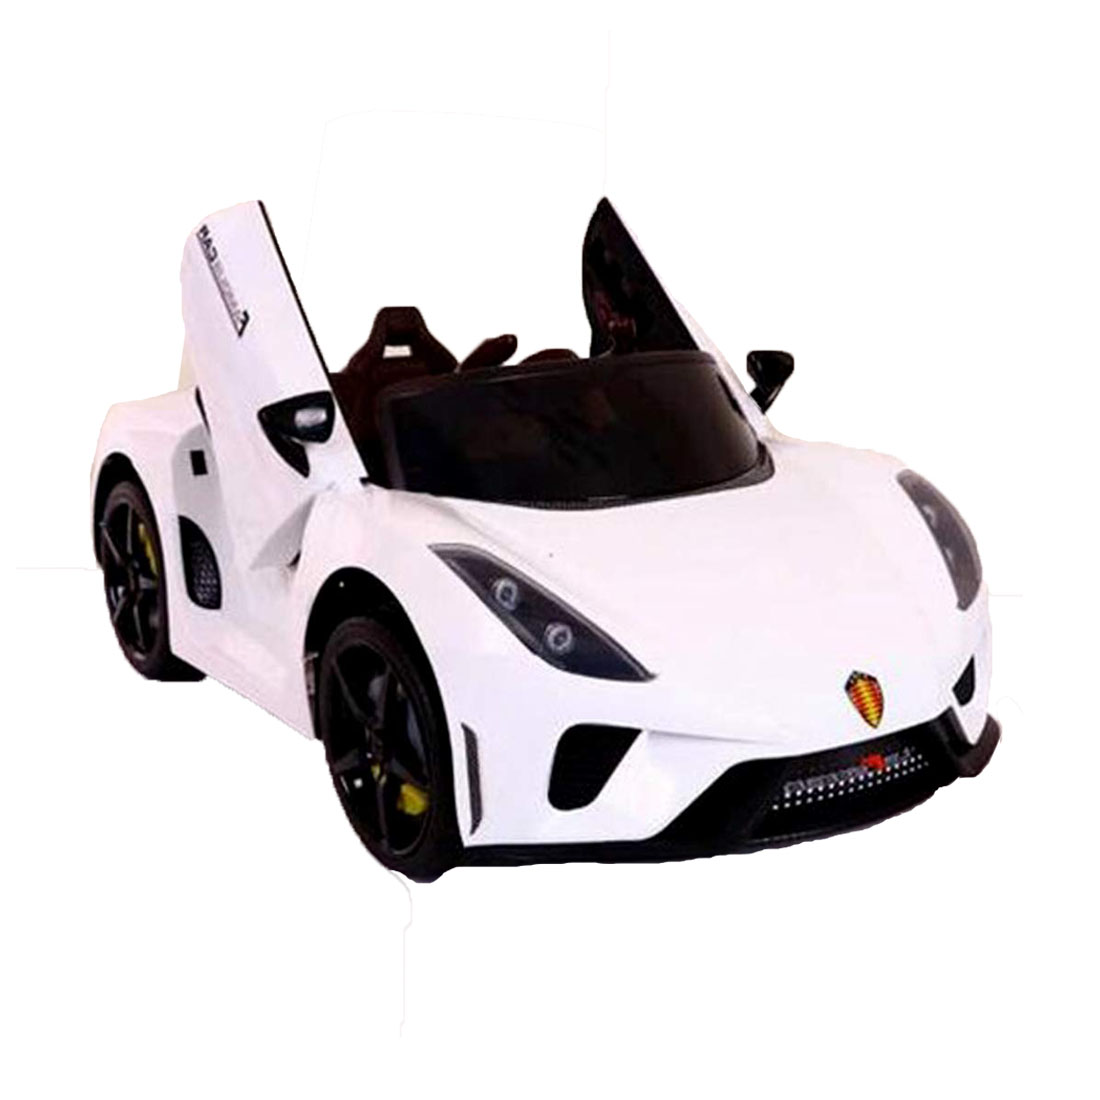 Ttoys The Ferrari Battery Operated Ride On Car For Kids Car Children Car Kids Cars To